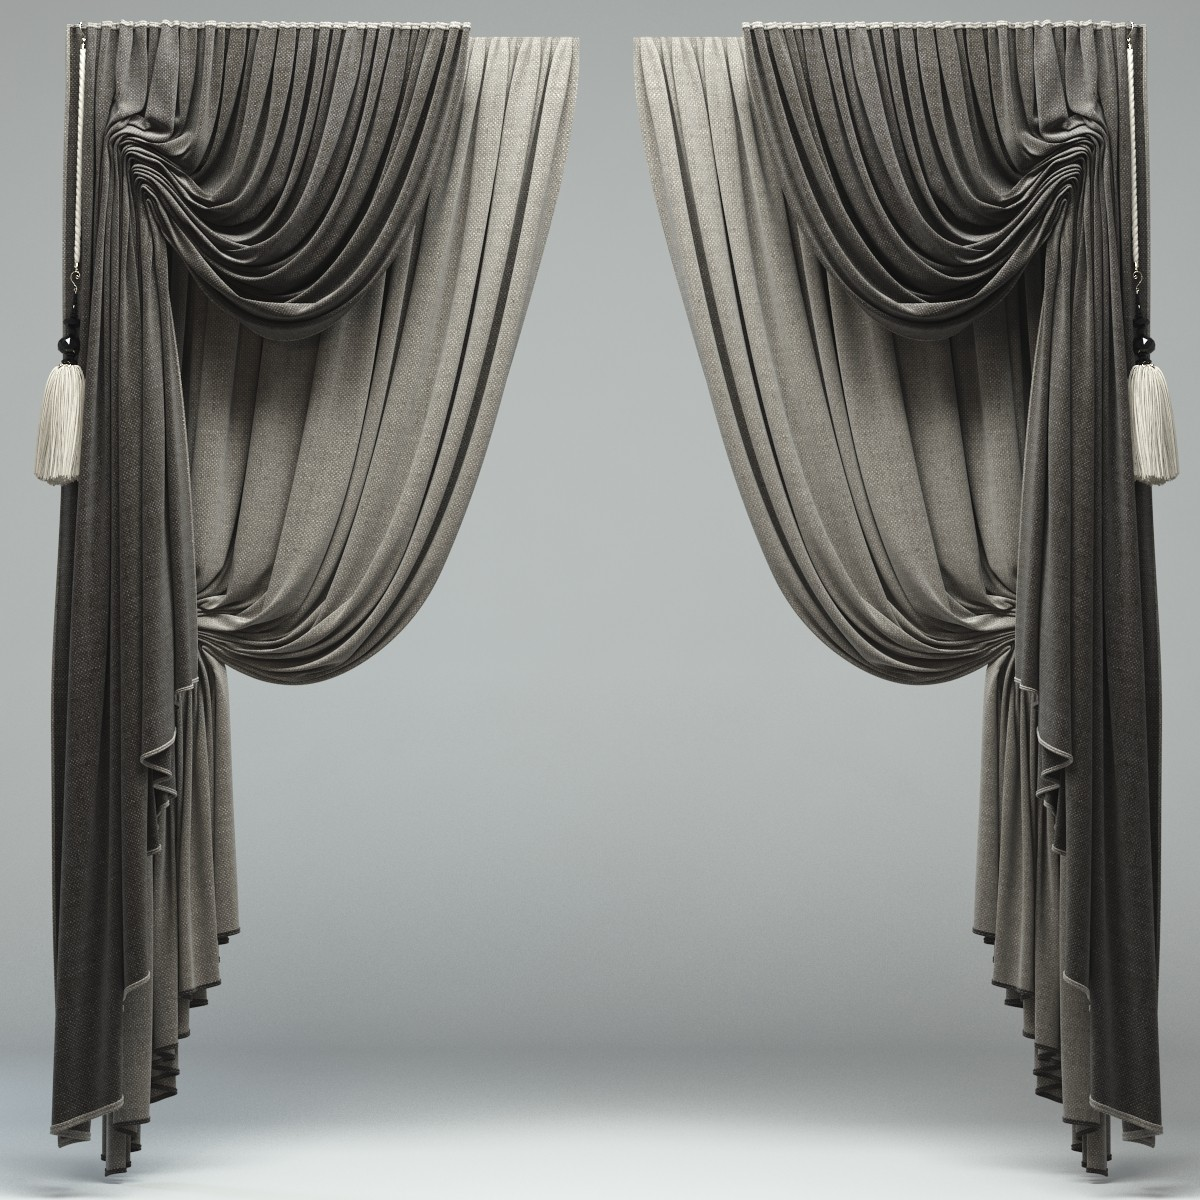 22 Latest curtain designs patterns ideas for modern and classic interiors